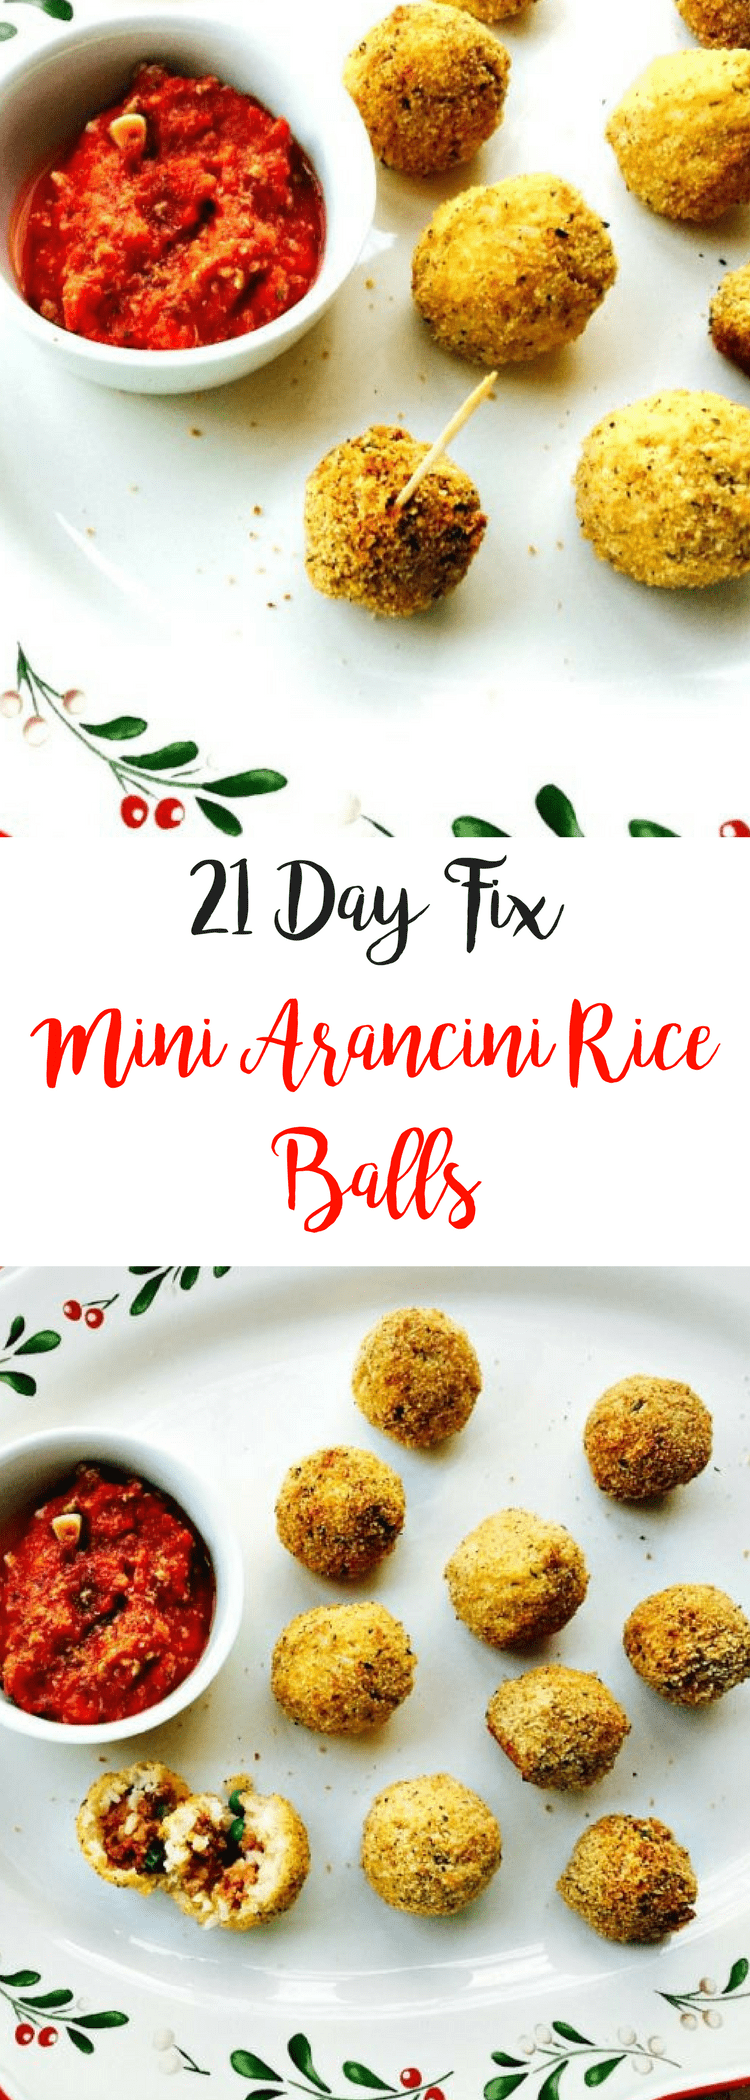 21 Day Fix Mini Arancini Rice Balls {Gluten-free} | Confessions of a Fit Foodie